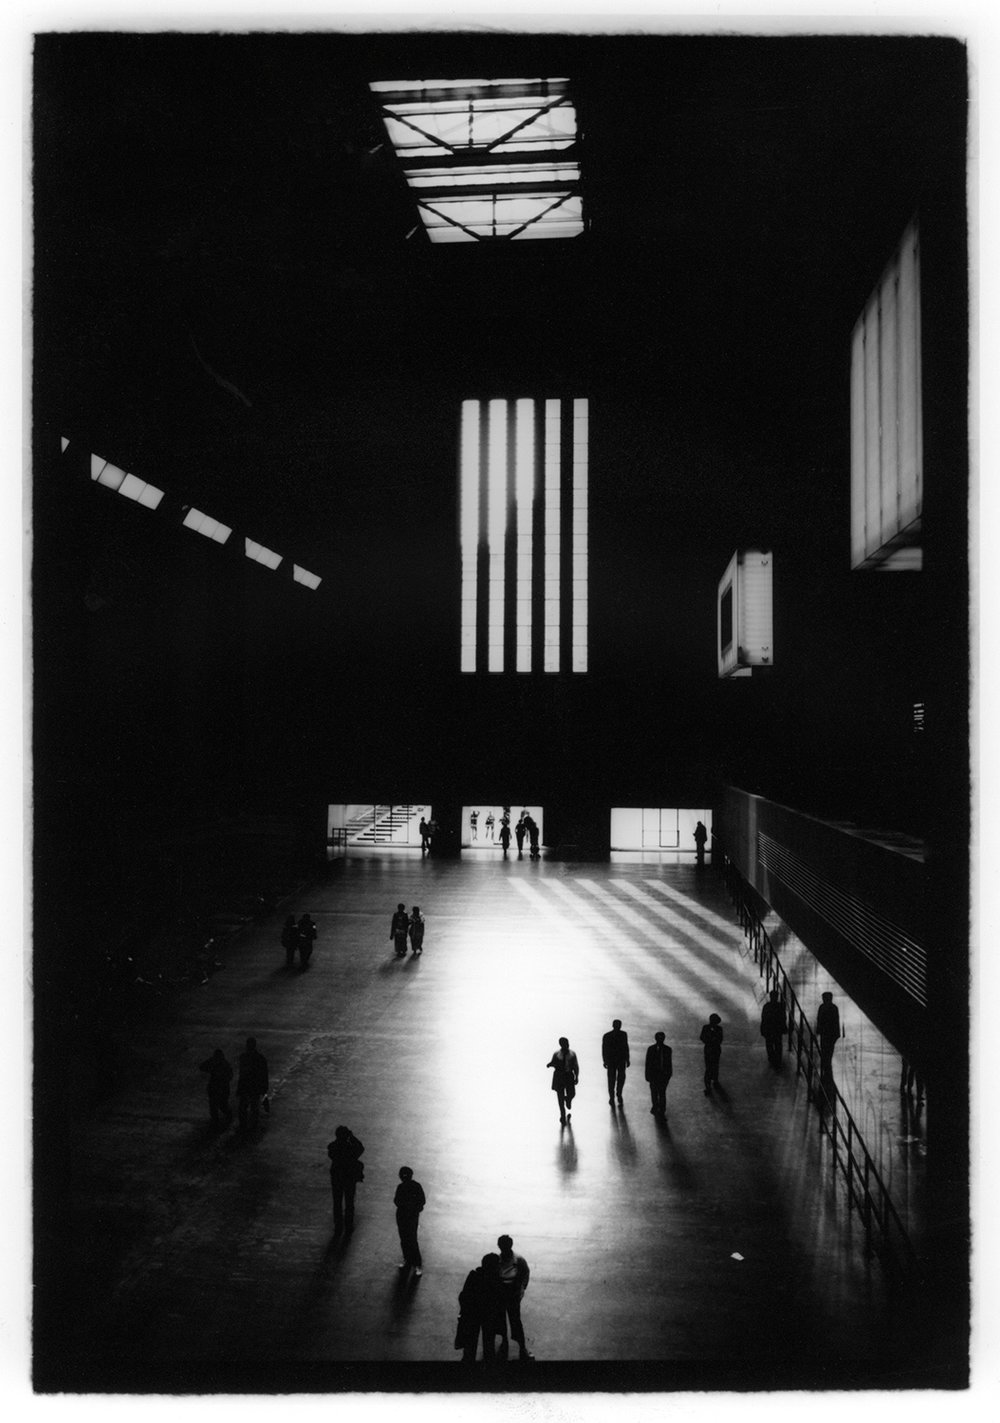 Turbine Hall, Tate Modern, London, 2000